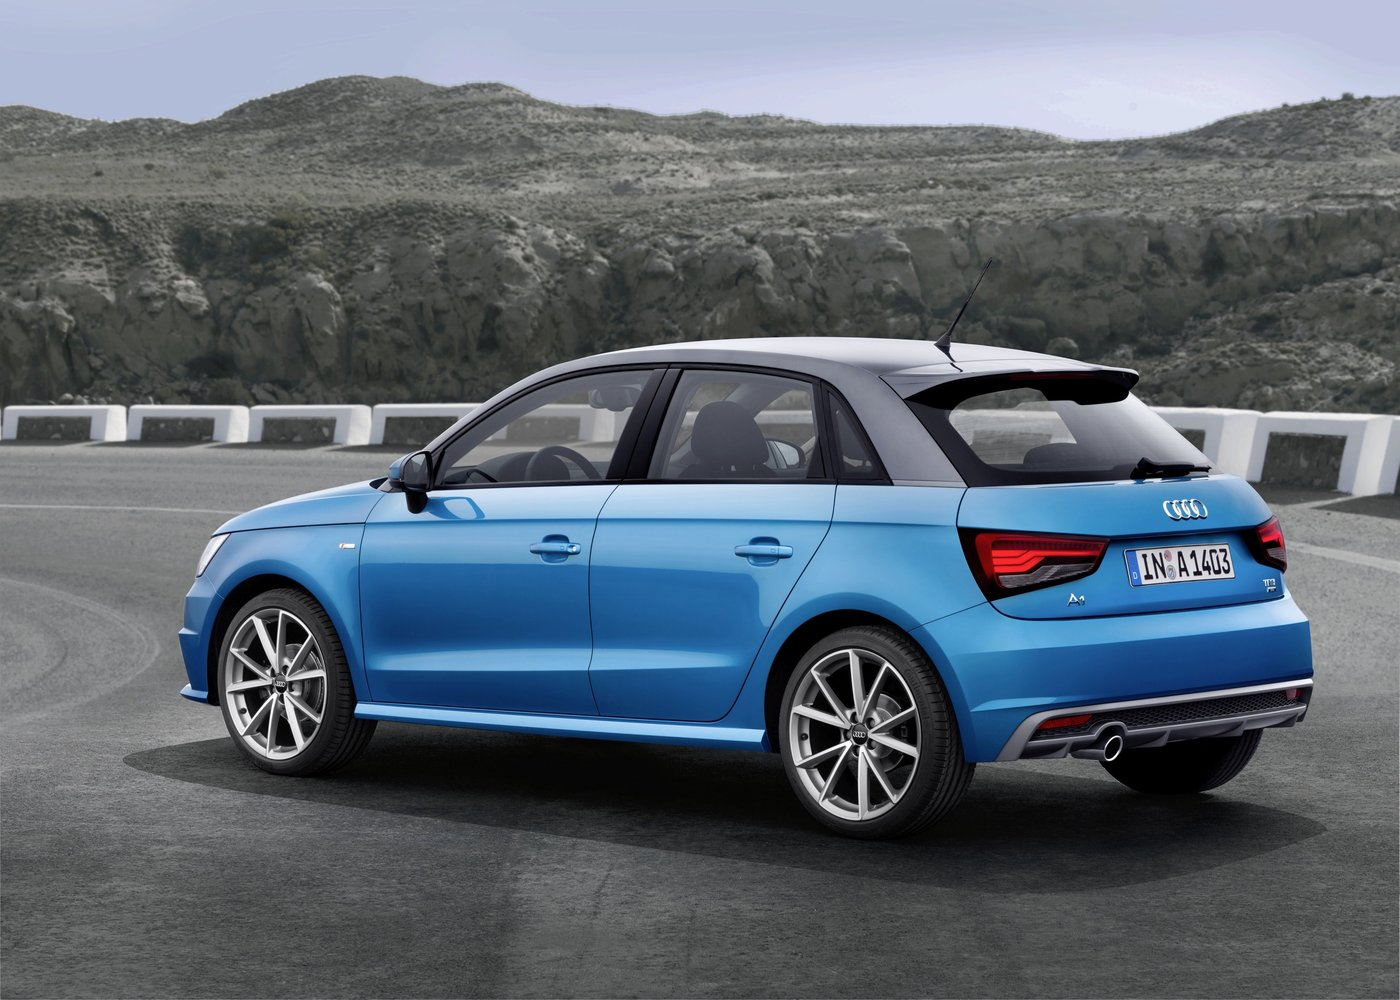 audi a1 Street smart compact, efficient and super stylish, the audi a1 sportback is perfectly suited to an urban lifestyle electronic stability control, six airbags, and a colour infotainment screen with optional mmi navigation are just some of the technology and safety features designed to complement your journey.